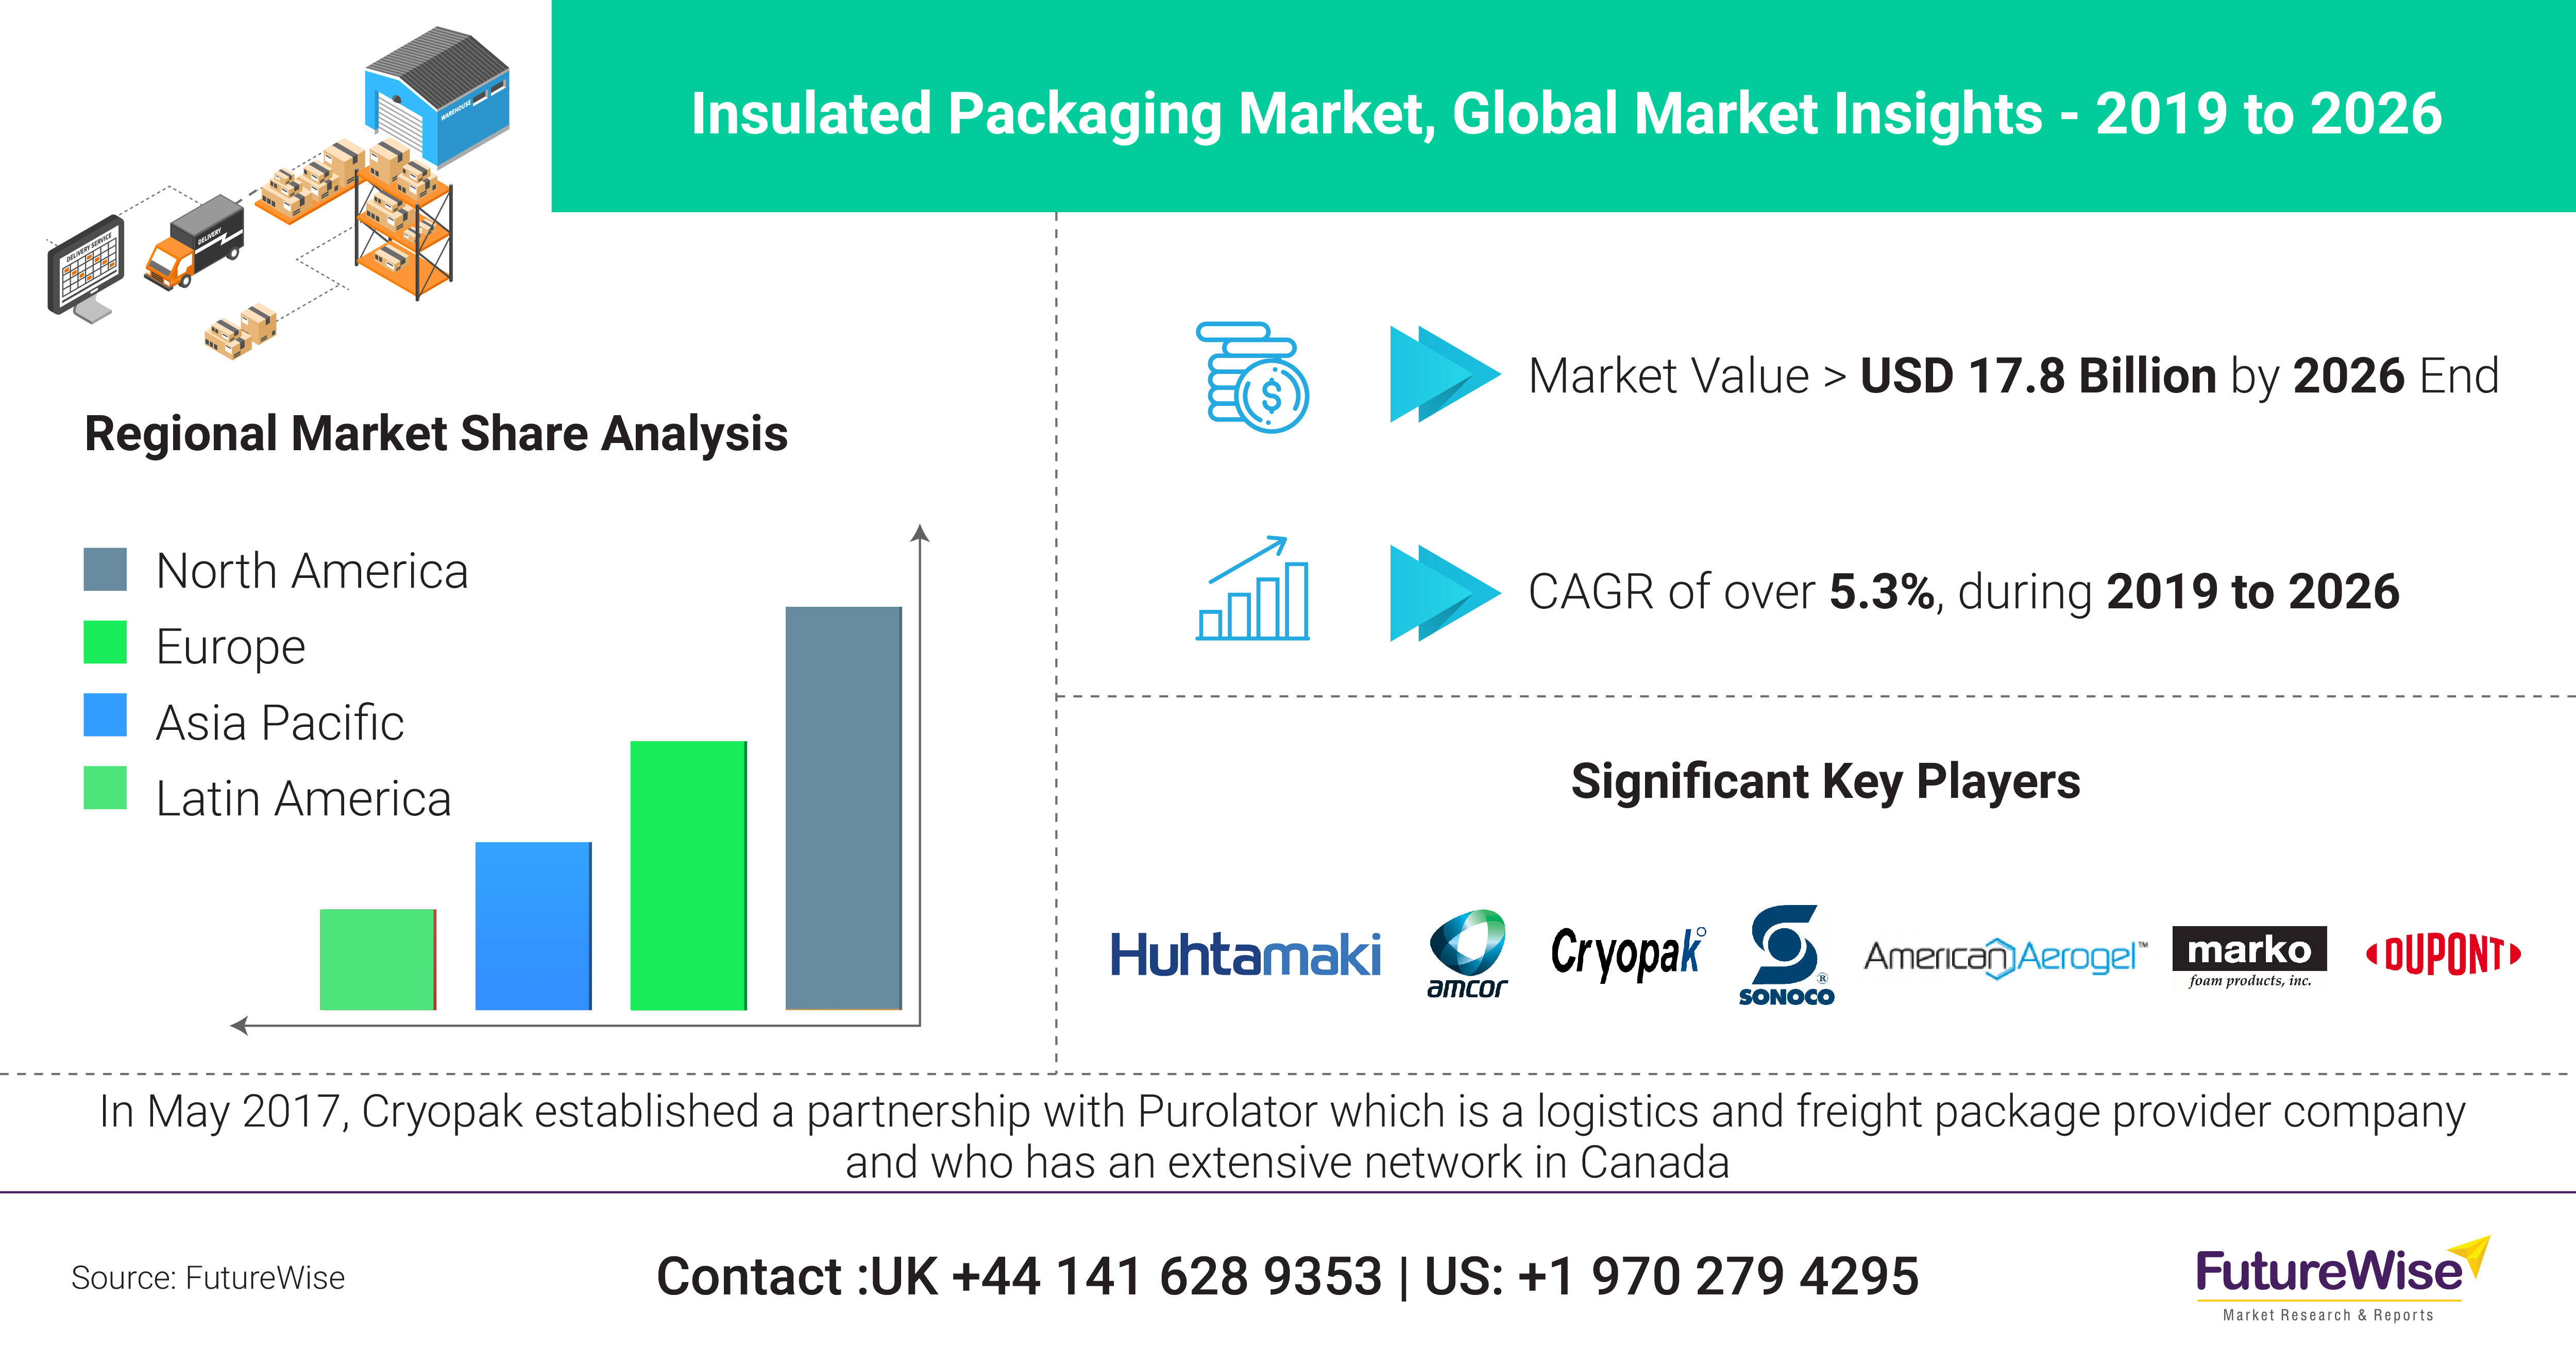 Insulated Packaging Market Trends, Share, Size and Forecast